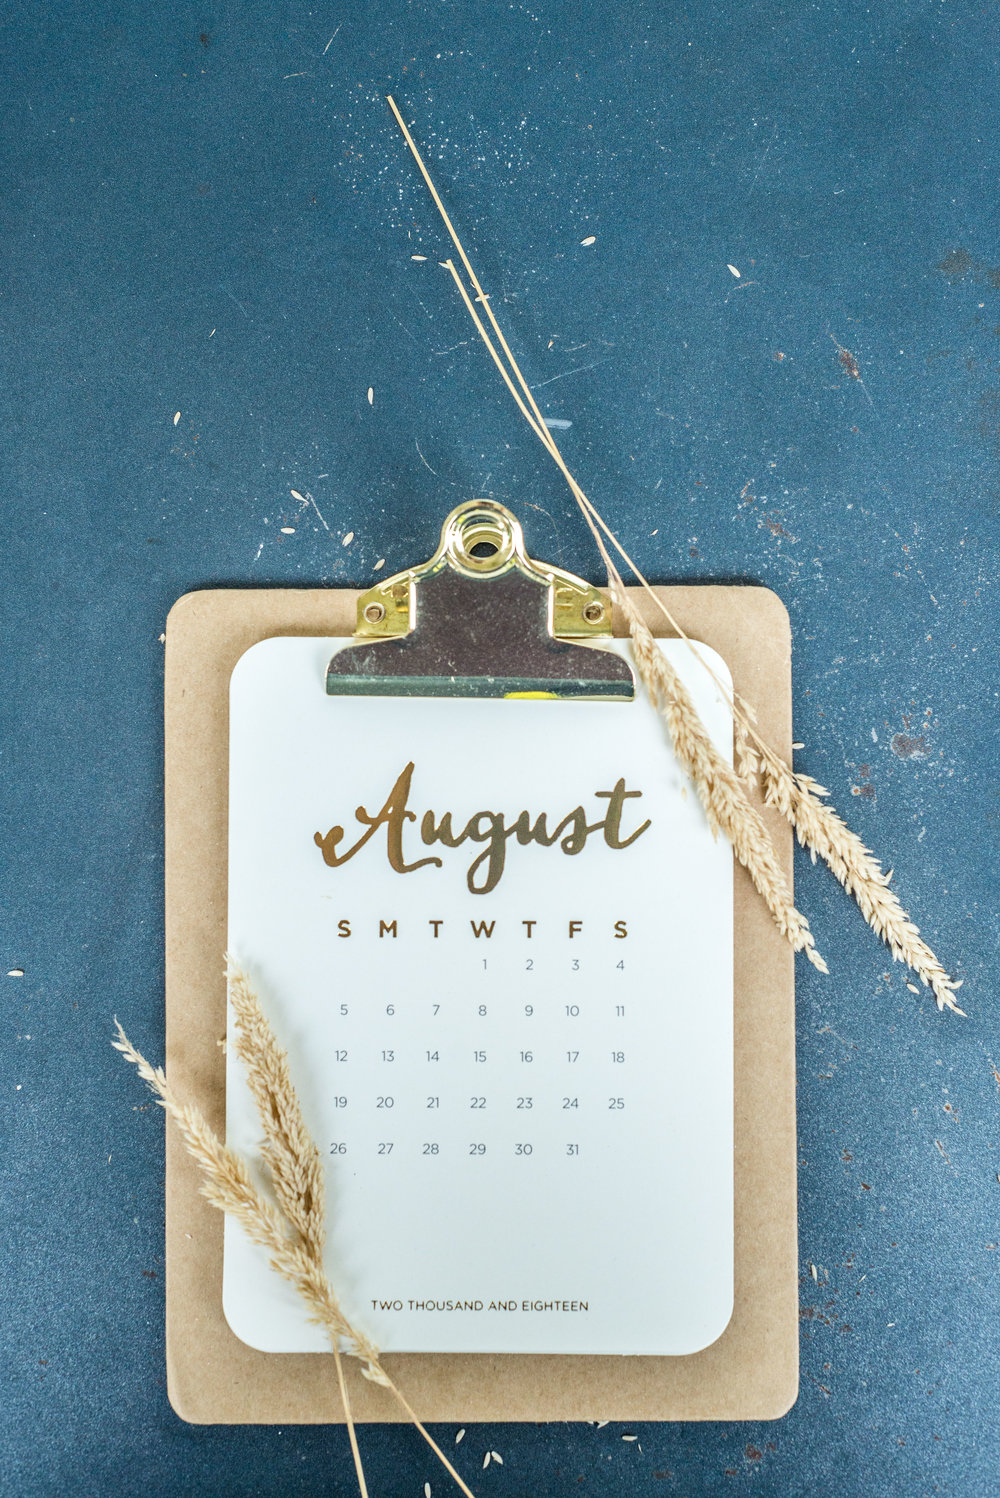 Celebrate the little things with these unique holidays in August!